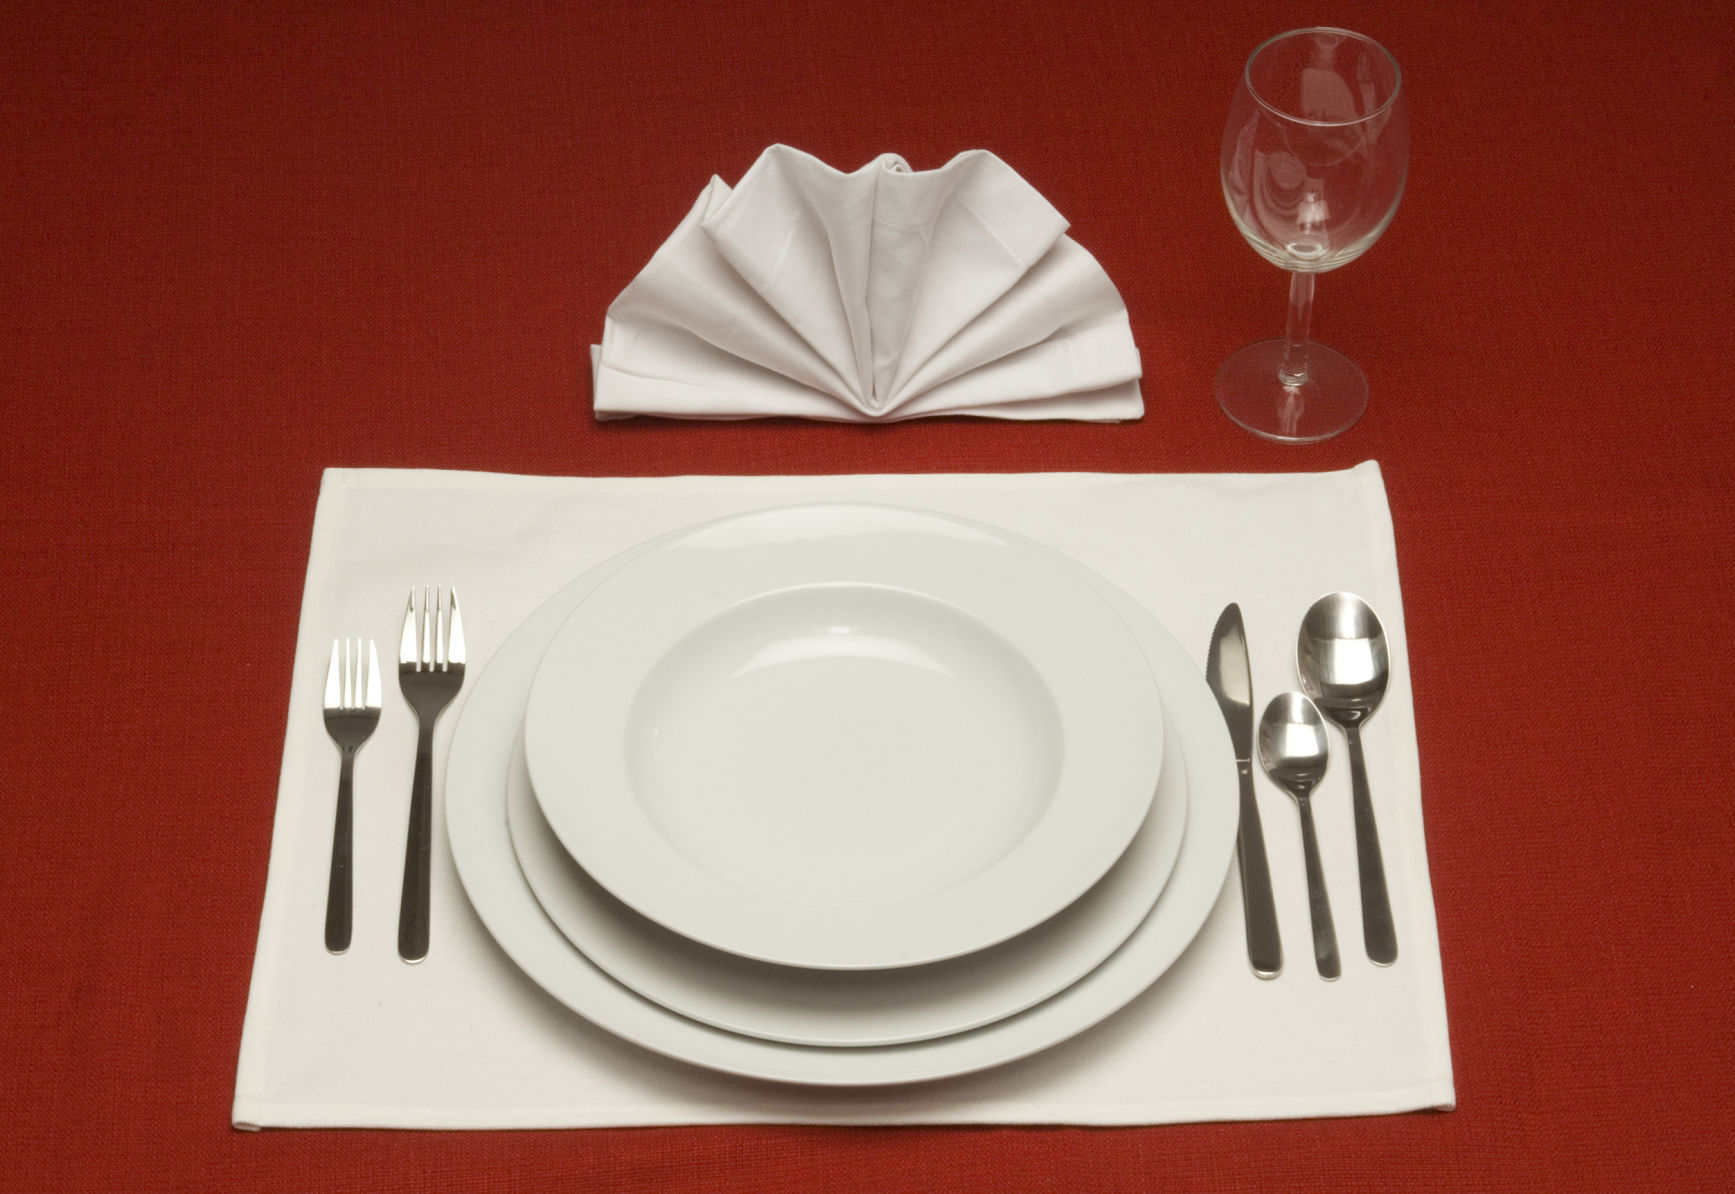 Placemat table setting teaser A running list